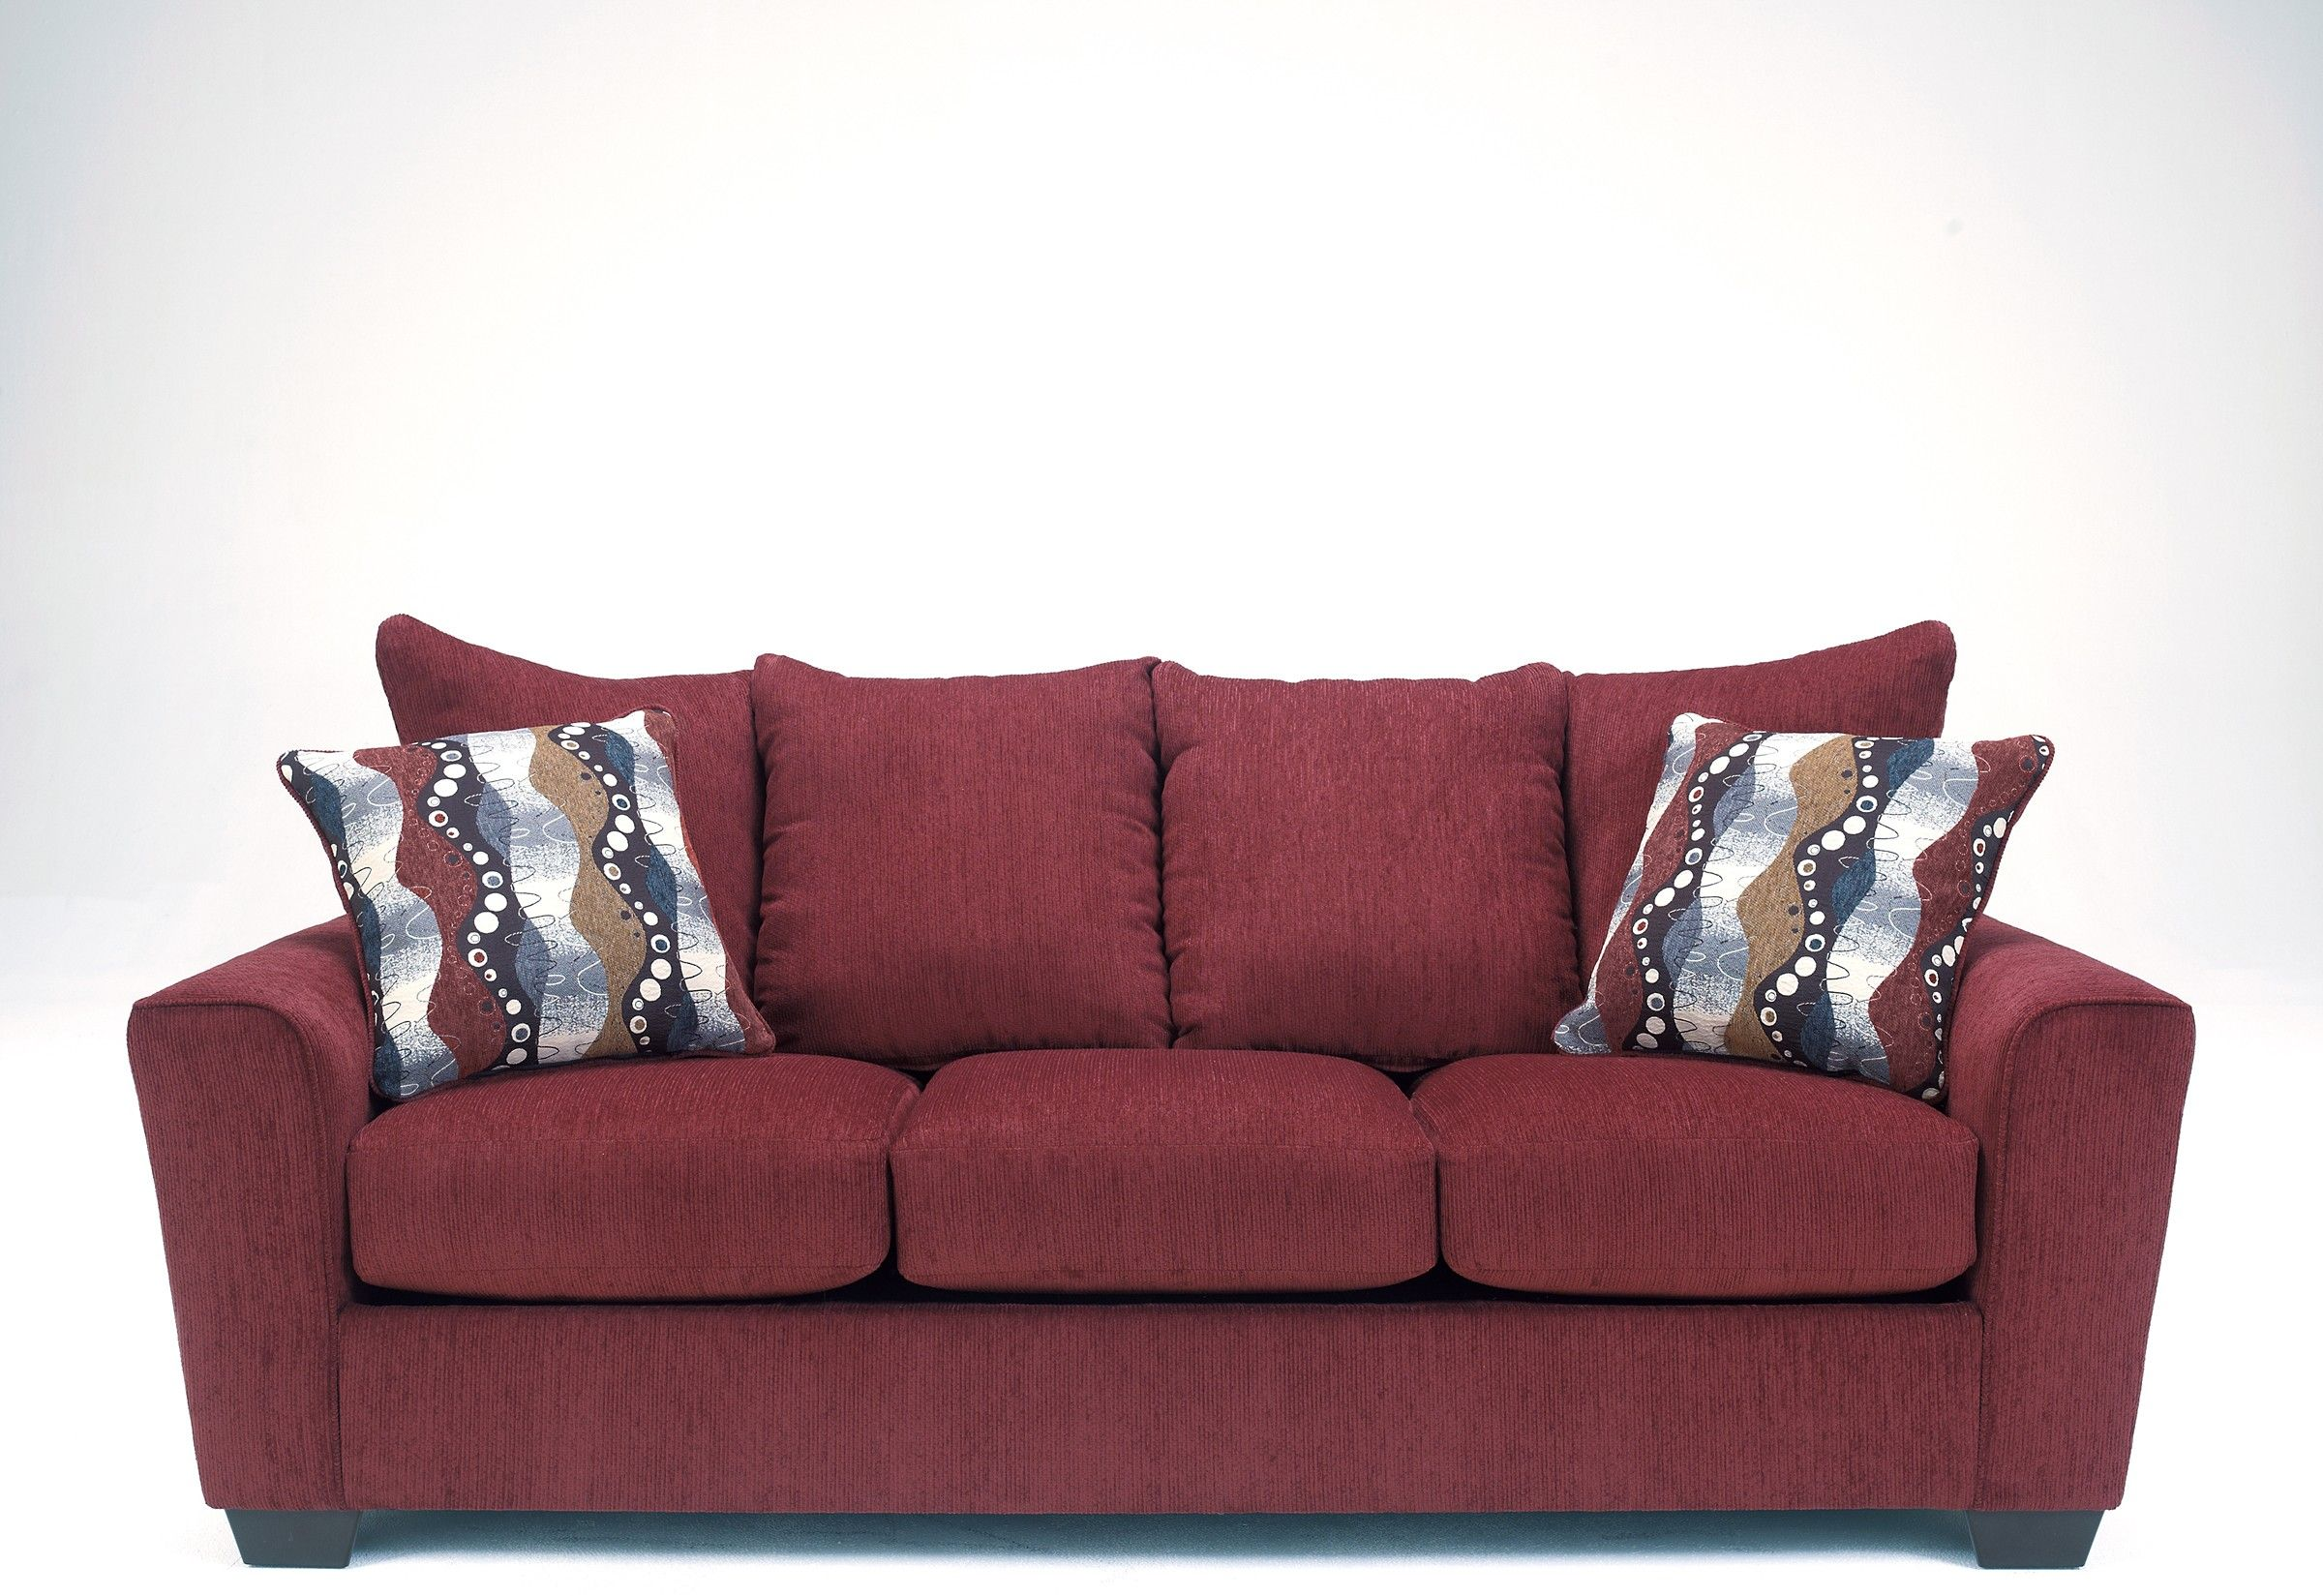 Best Ashley Brogain 2690138 Benchcraft Sofa The Contemporary Style Of Flared Arms Welt Trim And 400 x 300